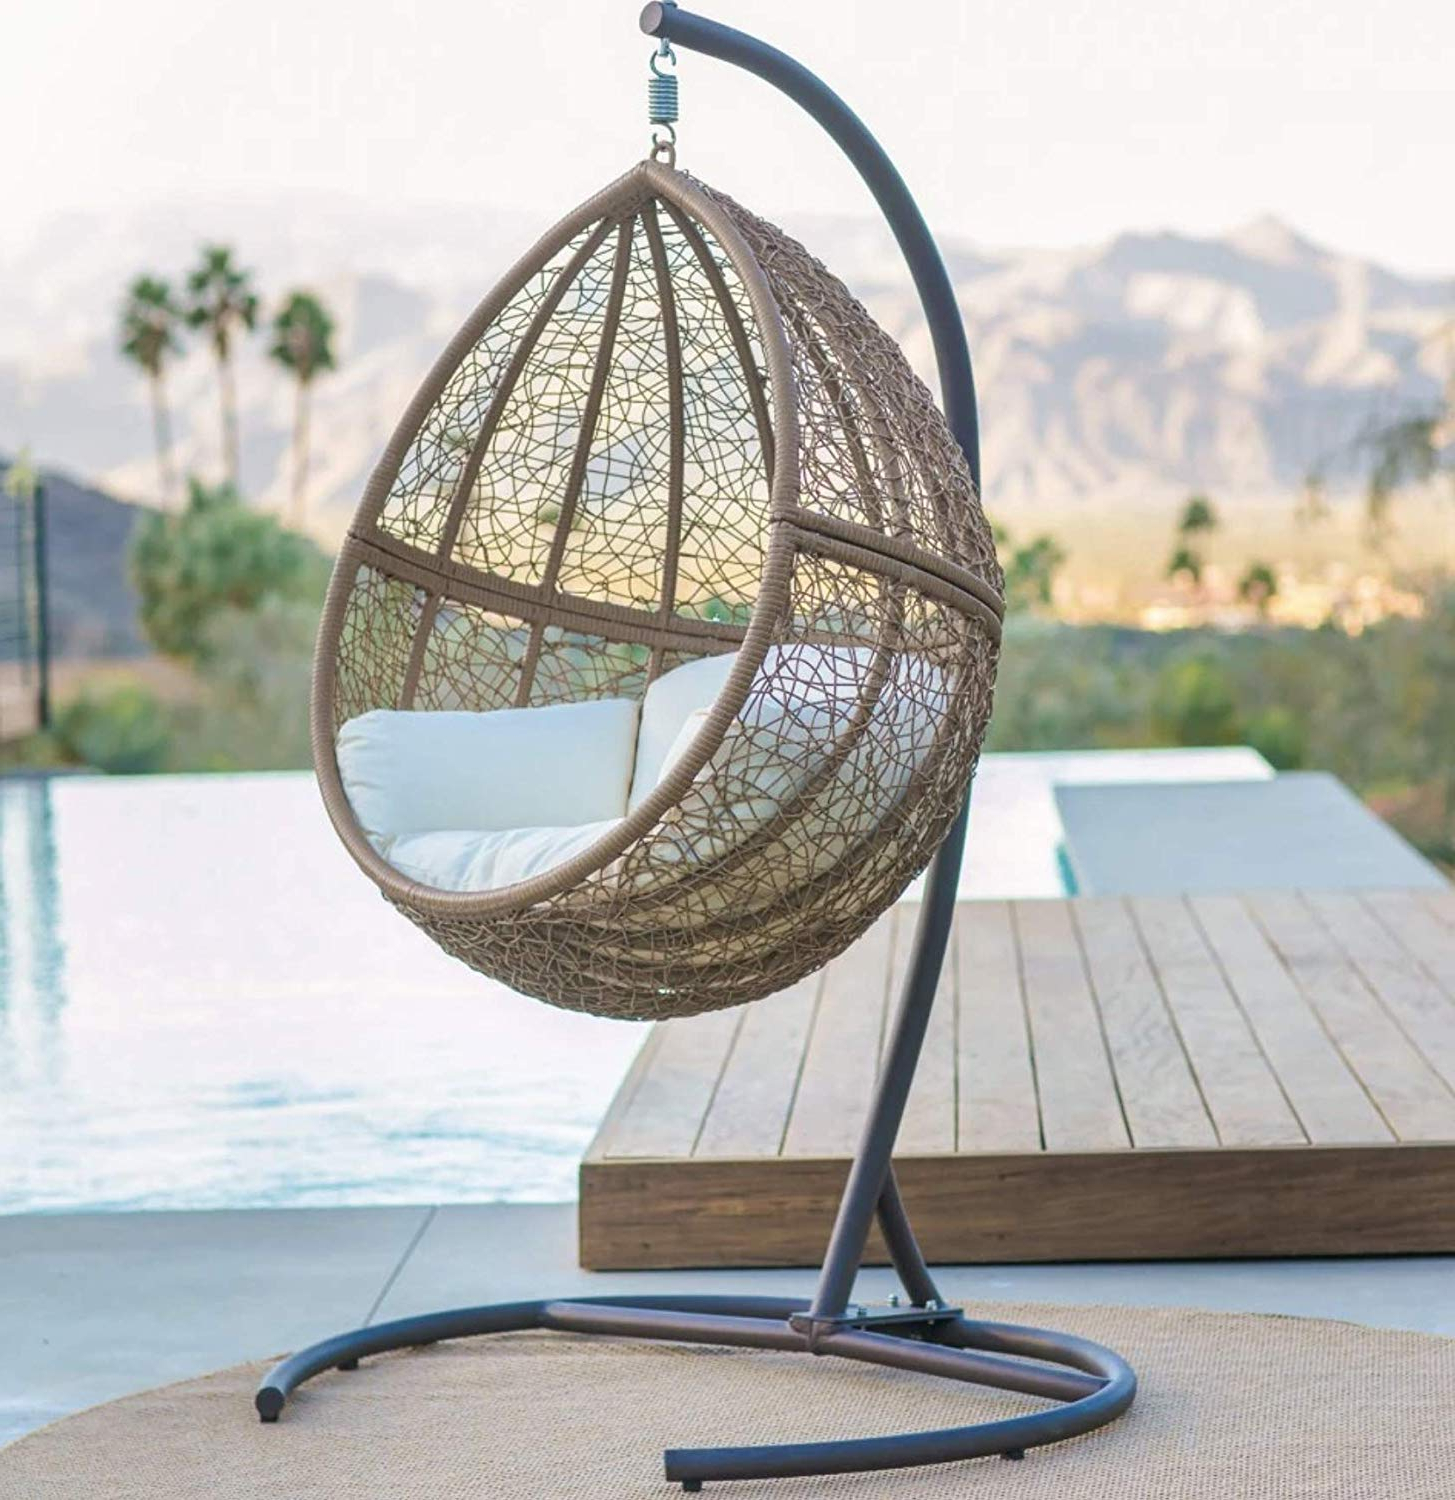 Fashionable Outdoor Wicker Plastic Tear Porch Swings With Stand For Amazon: Light Brown Boho Chic Resin Wicker Hanging Egg (View 20 of 30)